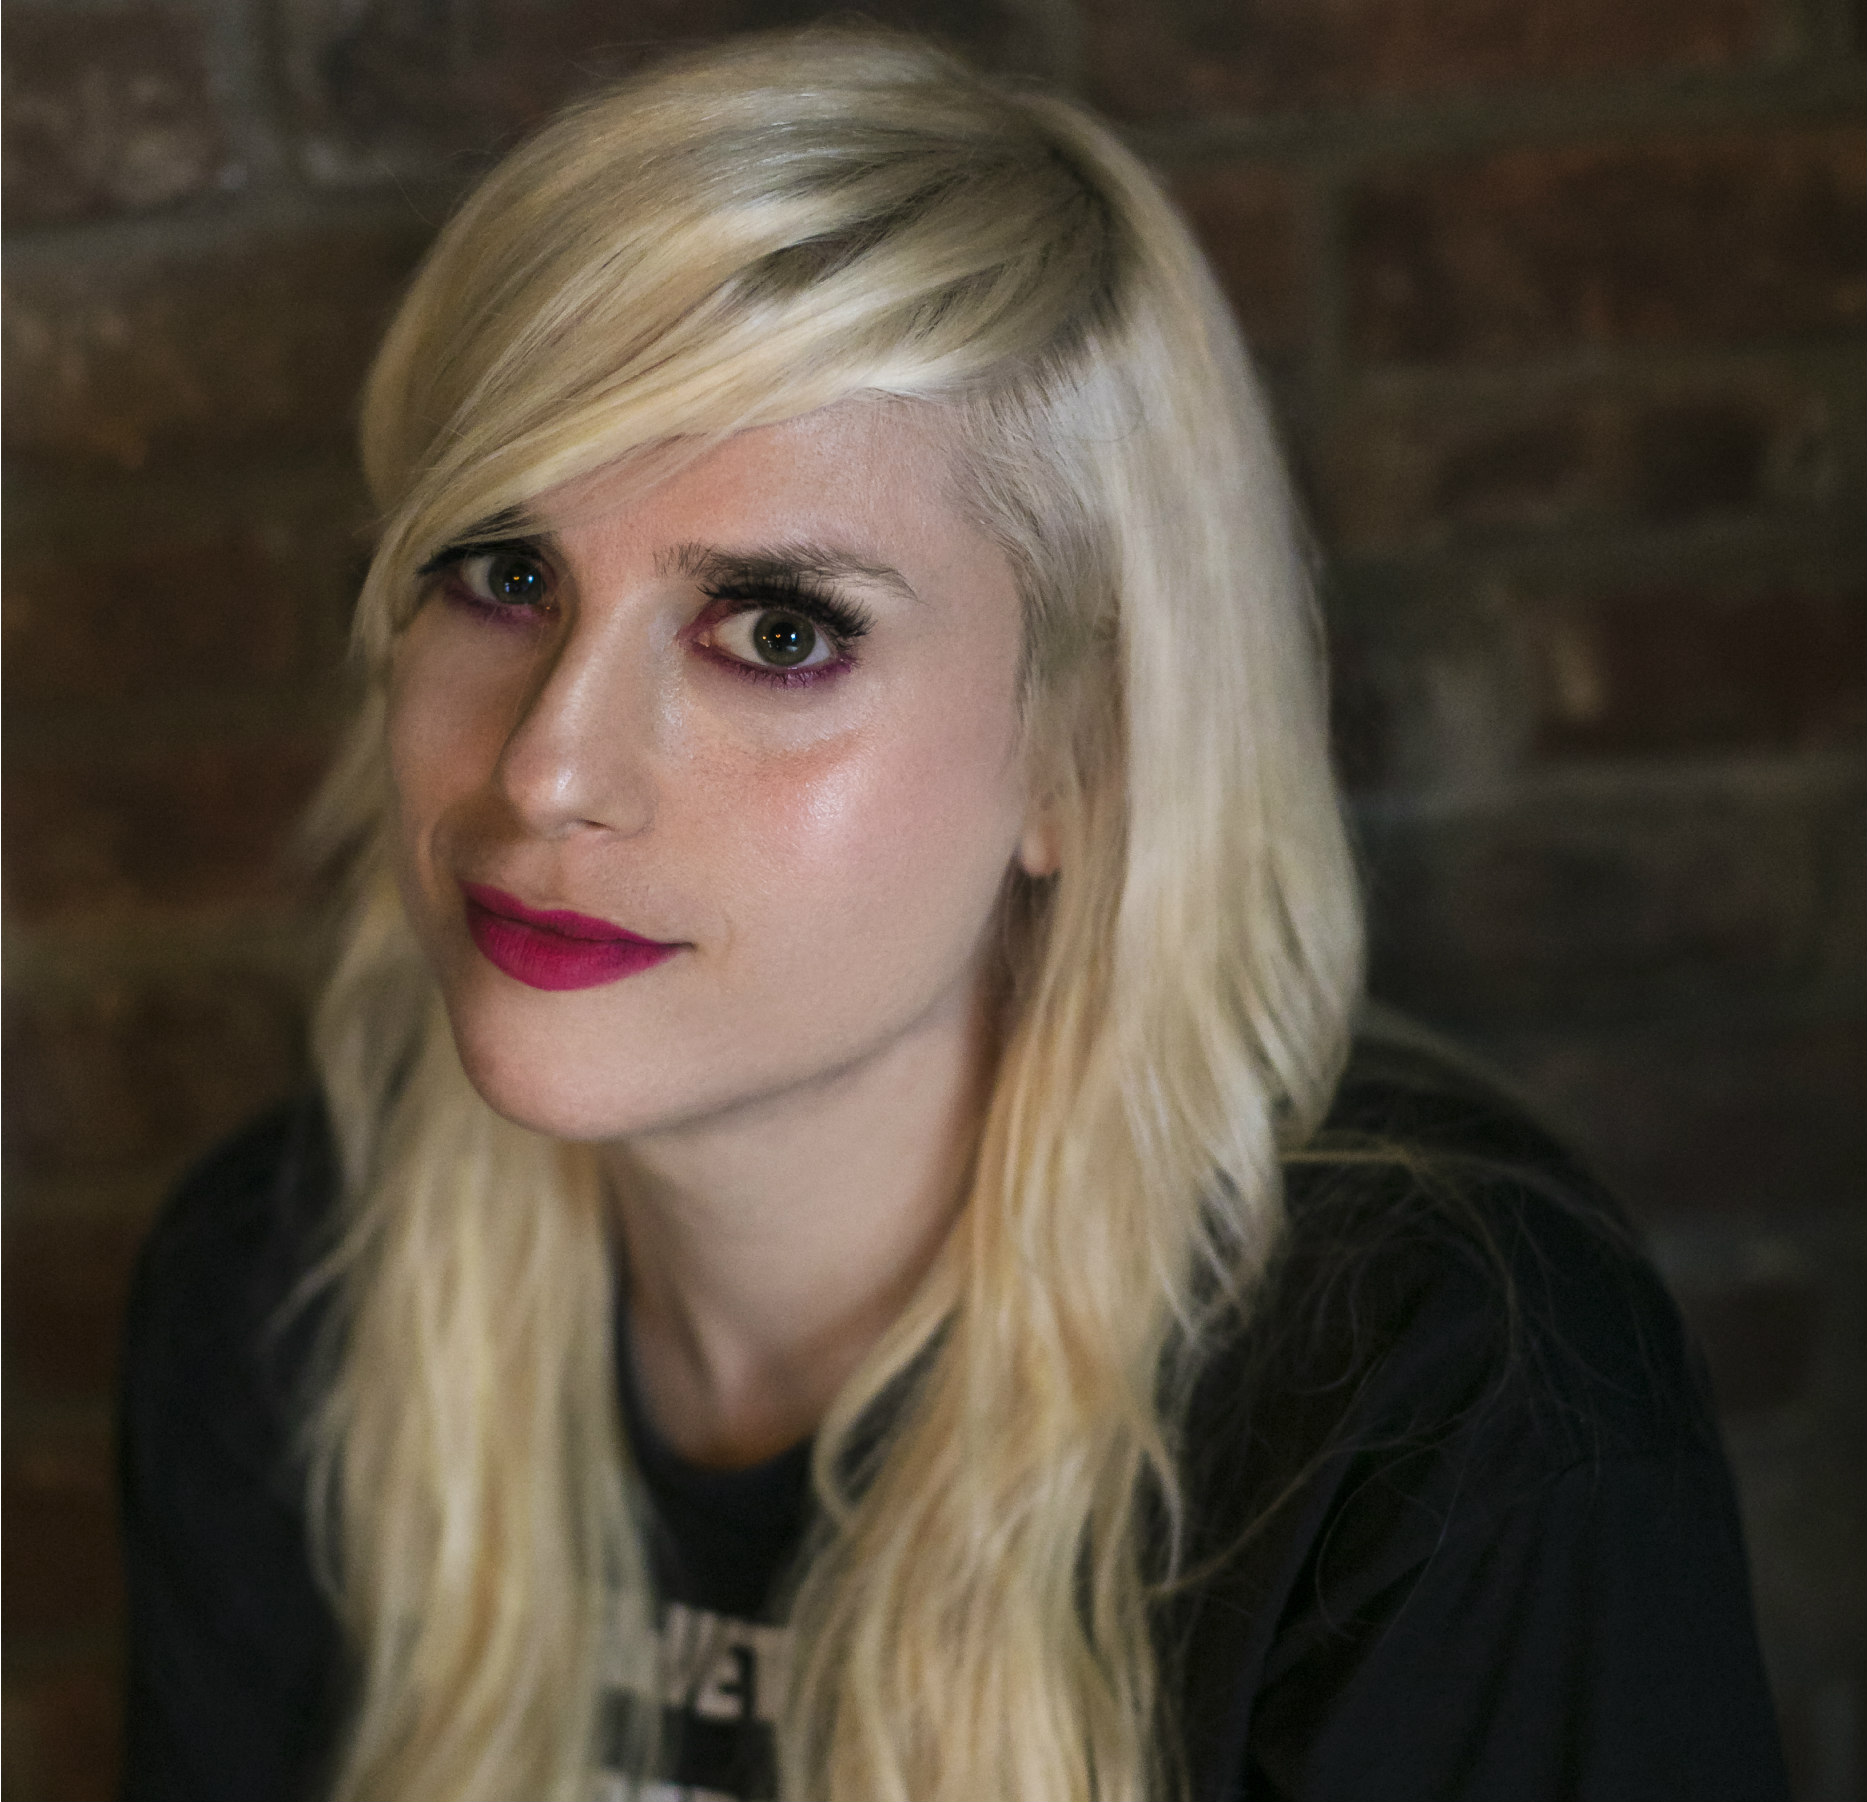 a white woman with shoulder-length blonde hair and red lipstick wearing a black t-shirt